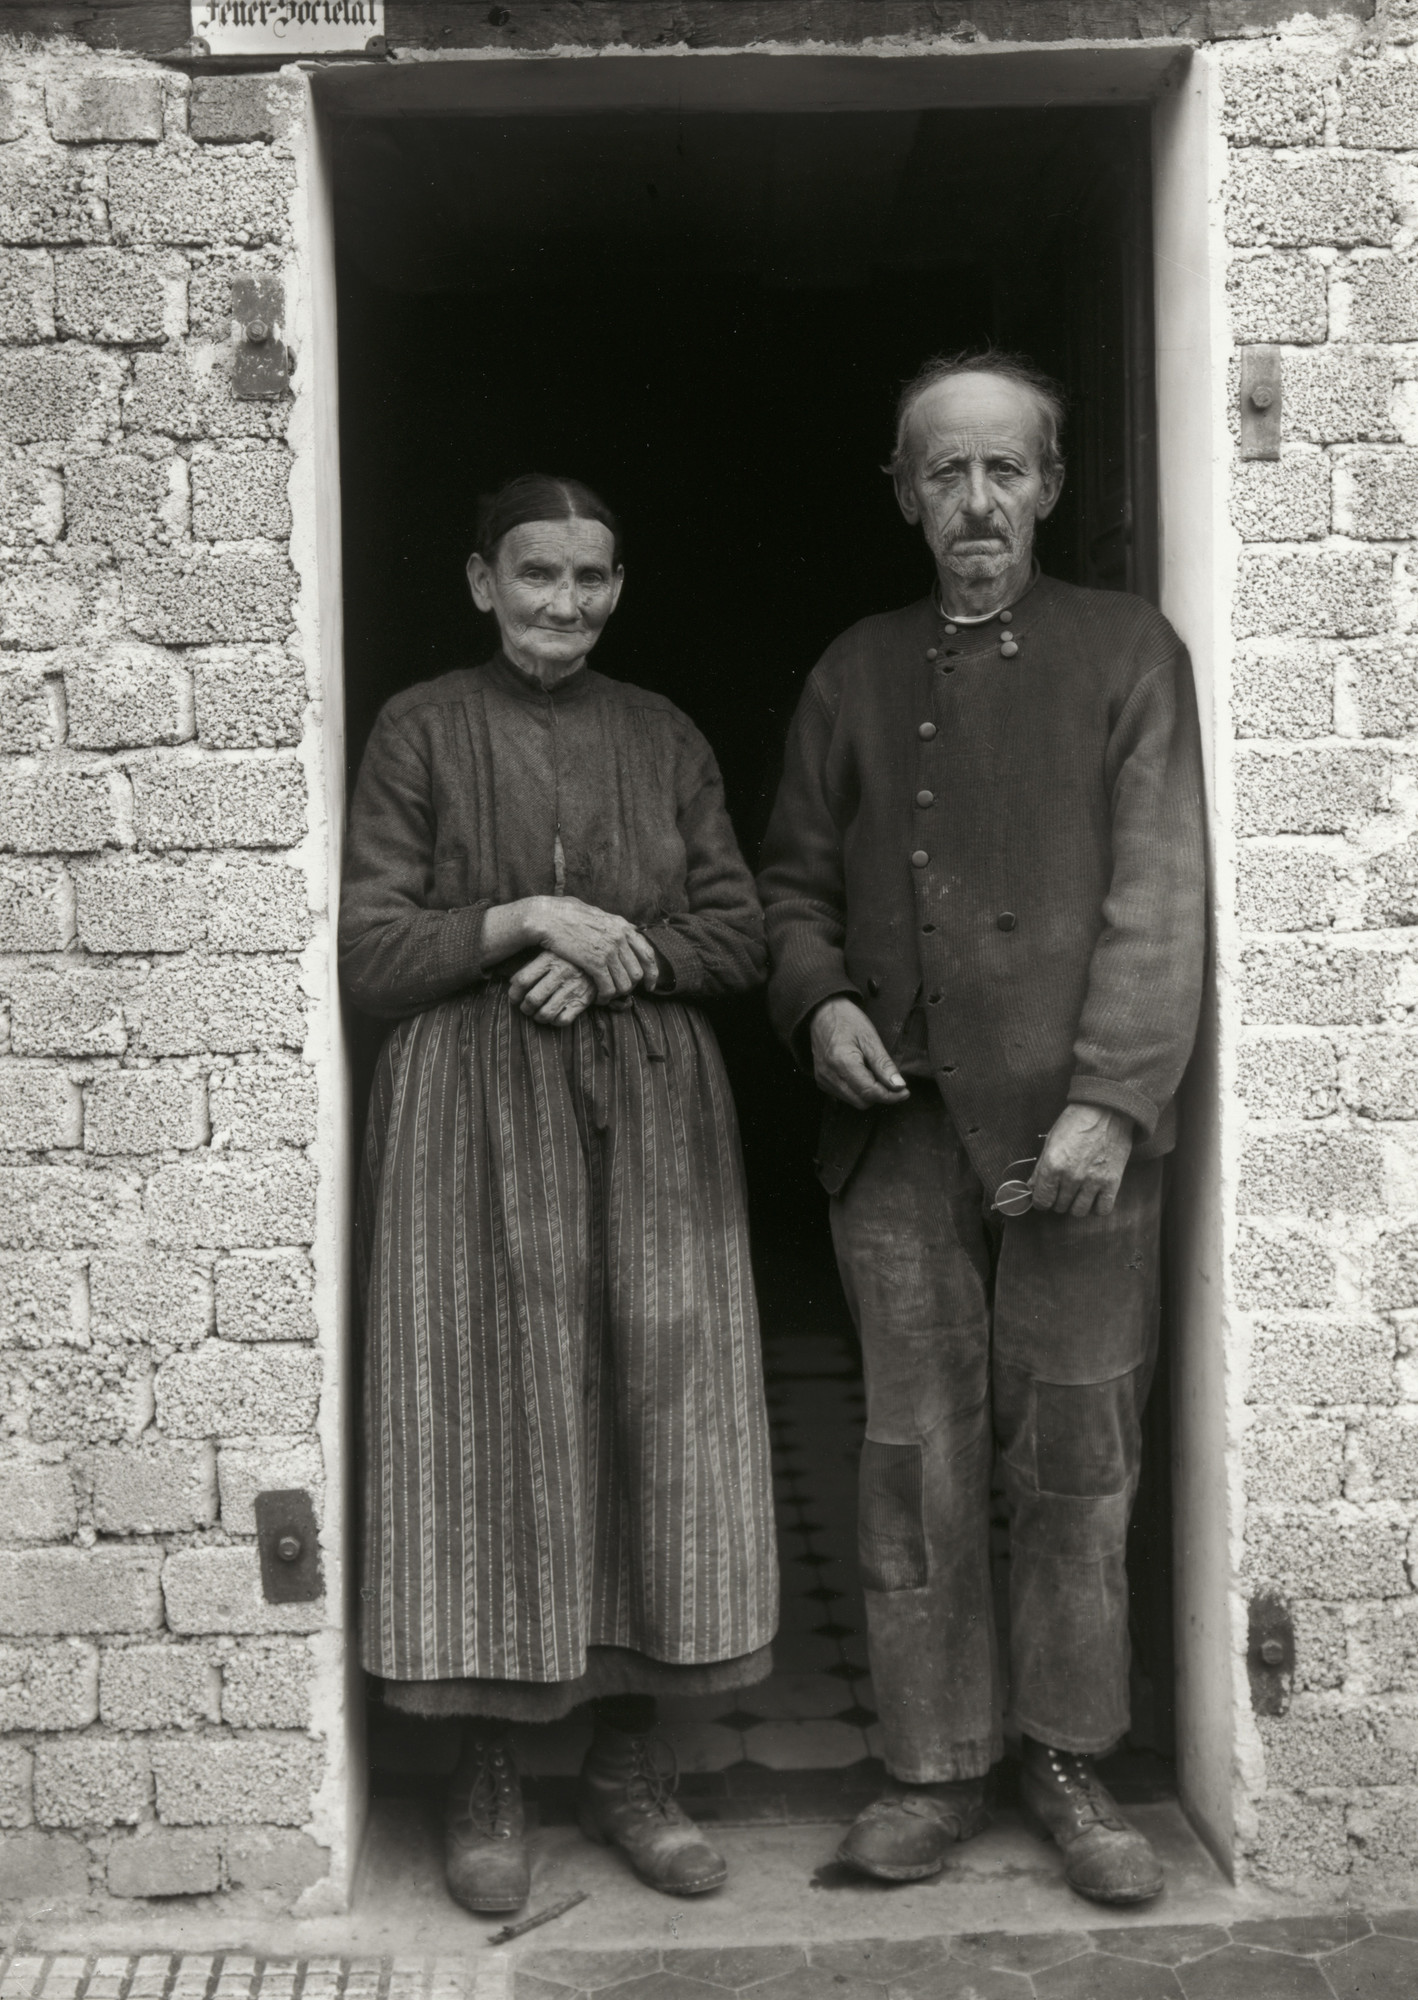 August Sander. Farming Couple. c. 1932